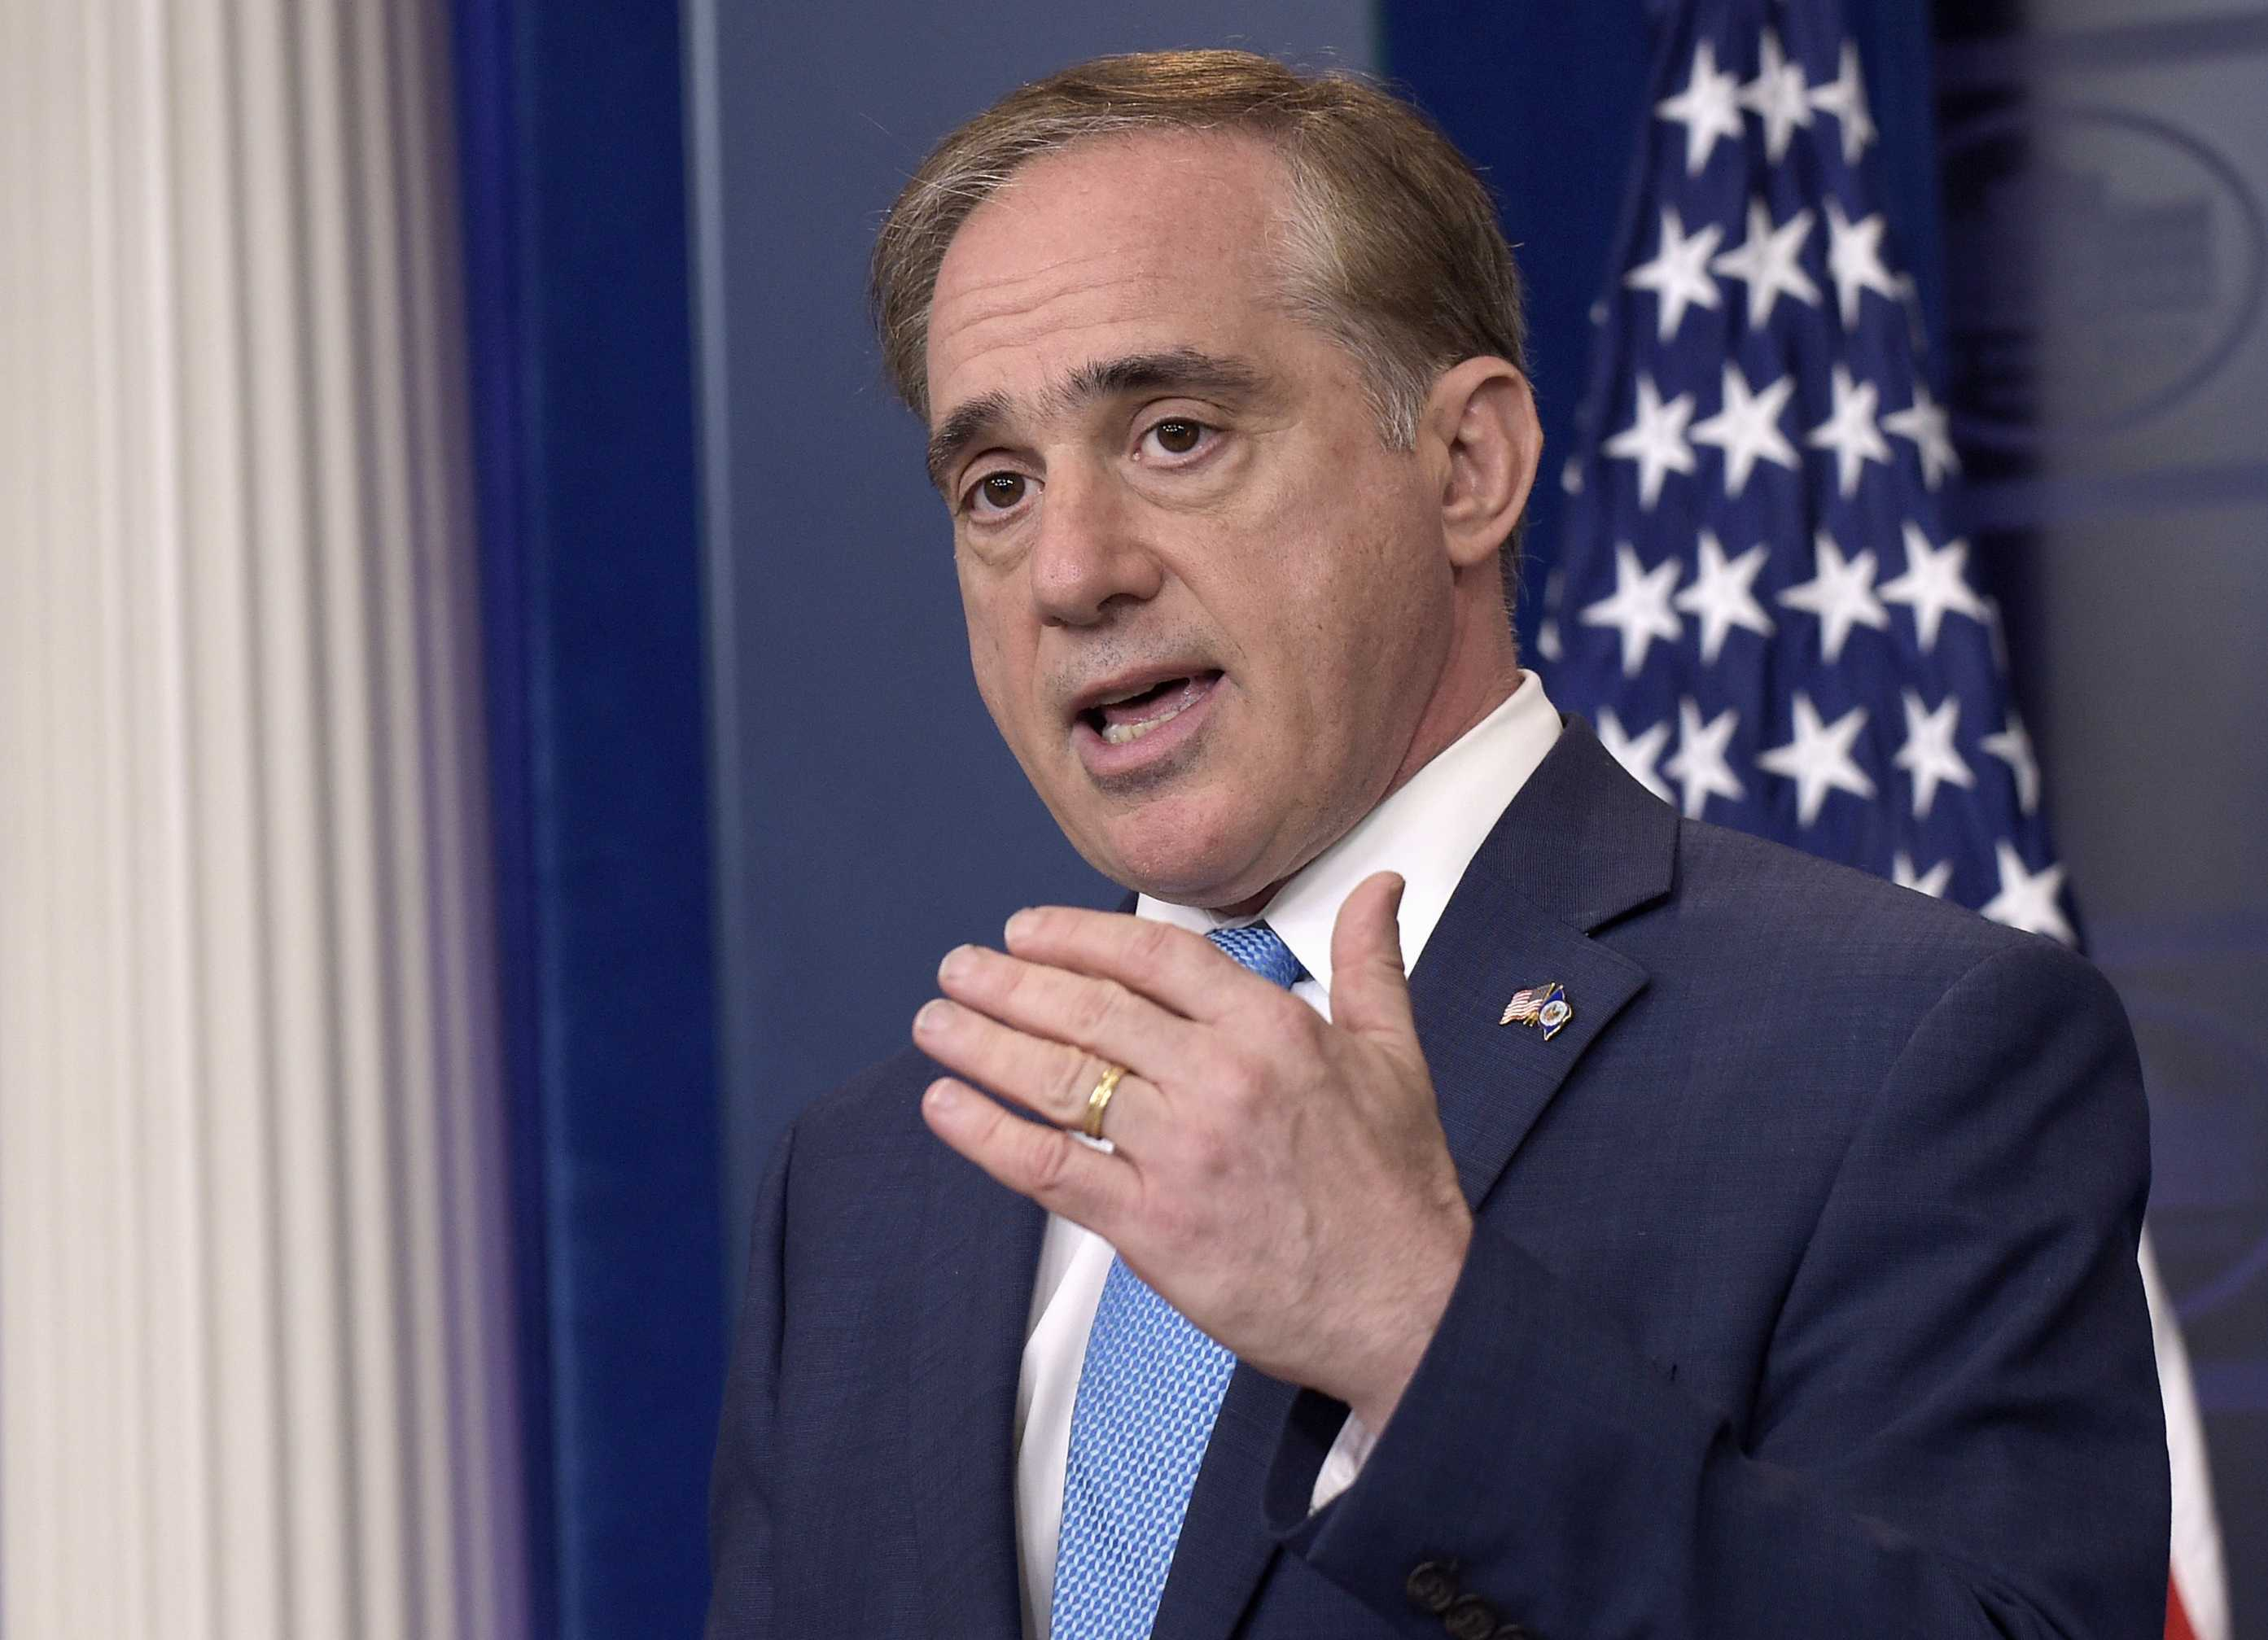 VA Secretary Says He'll Reimburse US for Disputed European Travel Costs